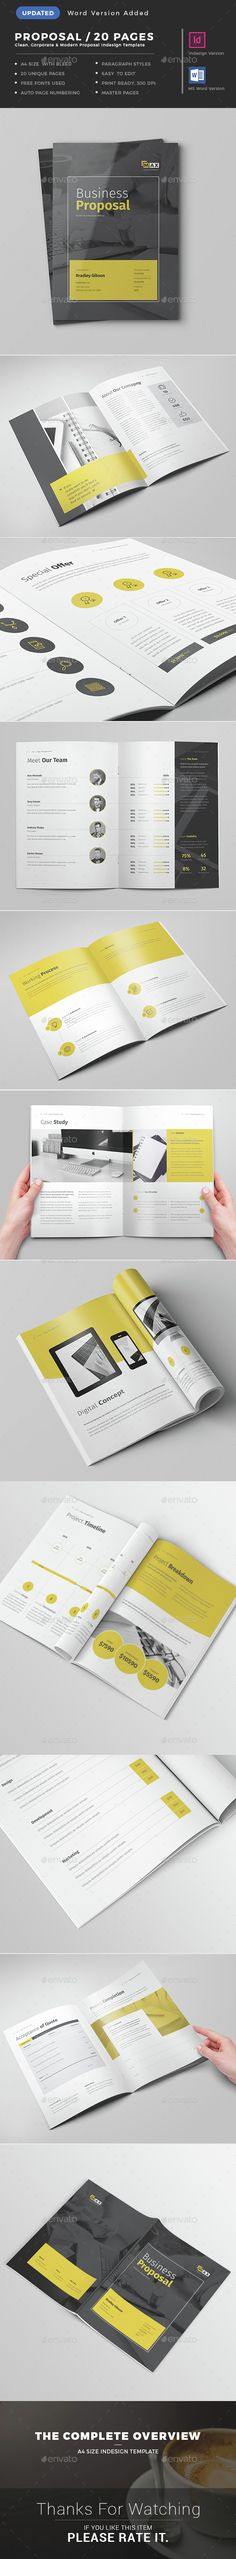 Commercial Proposal Format Extraordinary Commercial Proposal Template #09  Commercial Proposal  Pinterest .